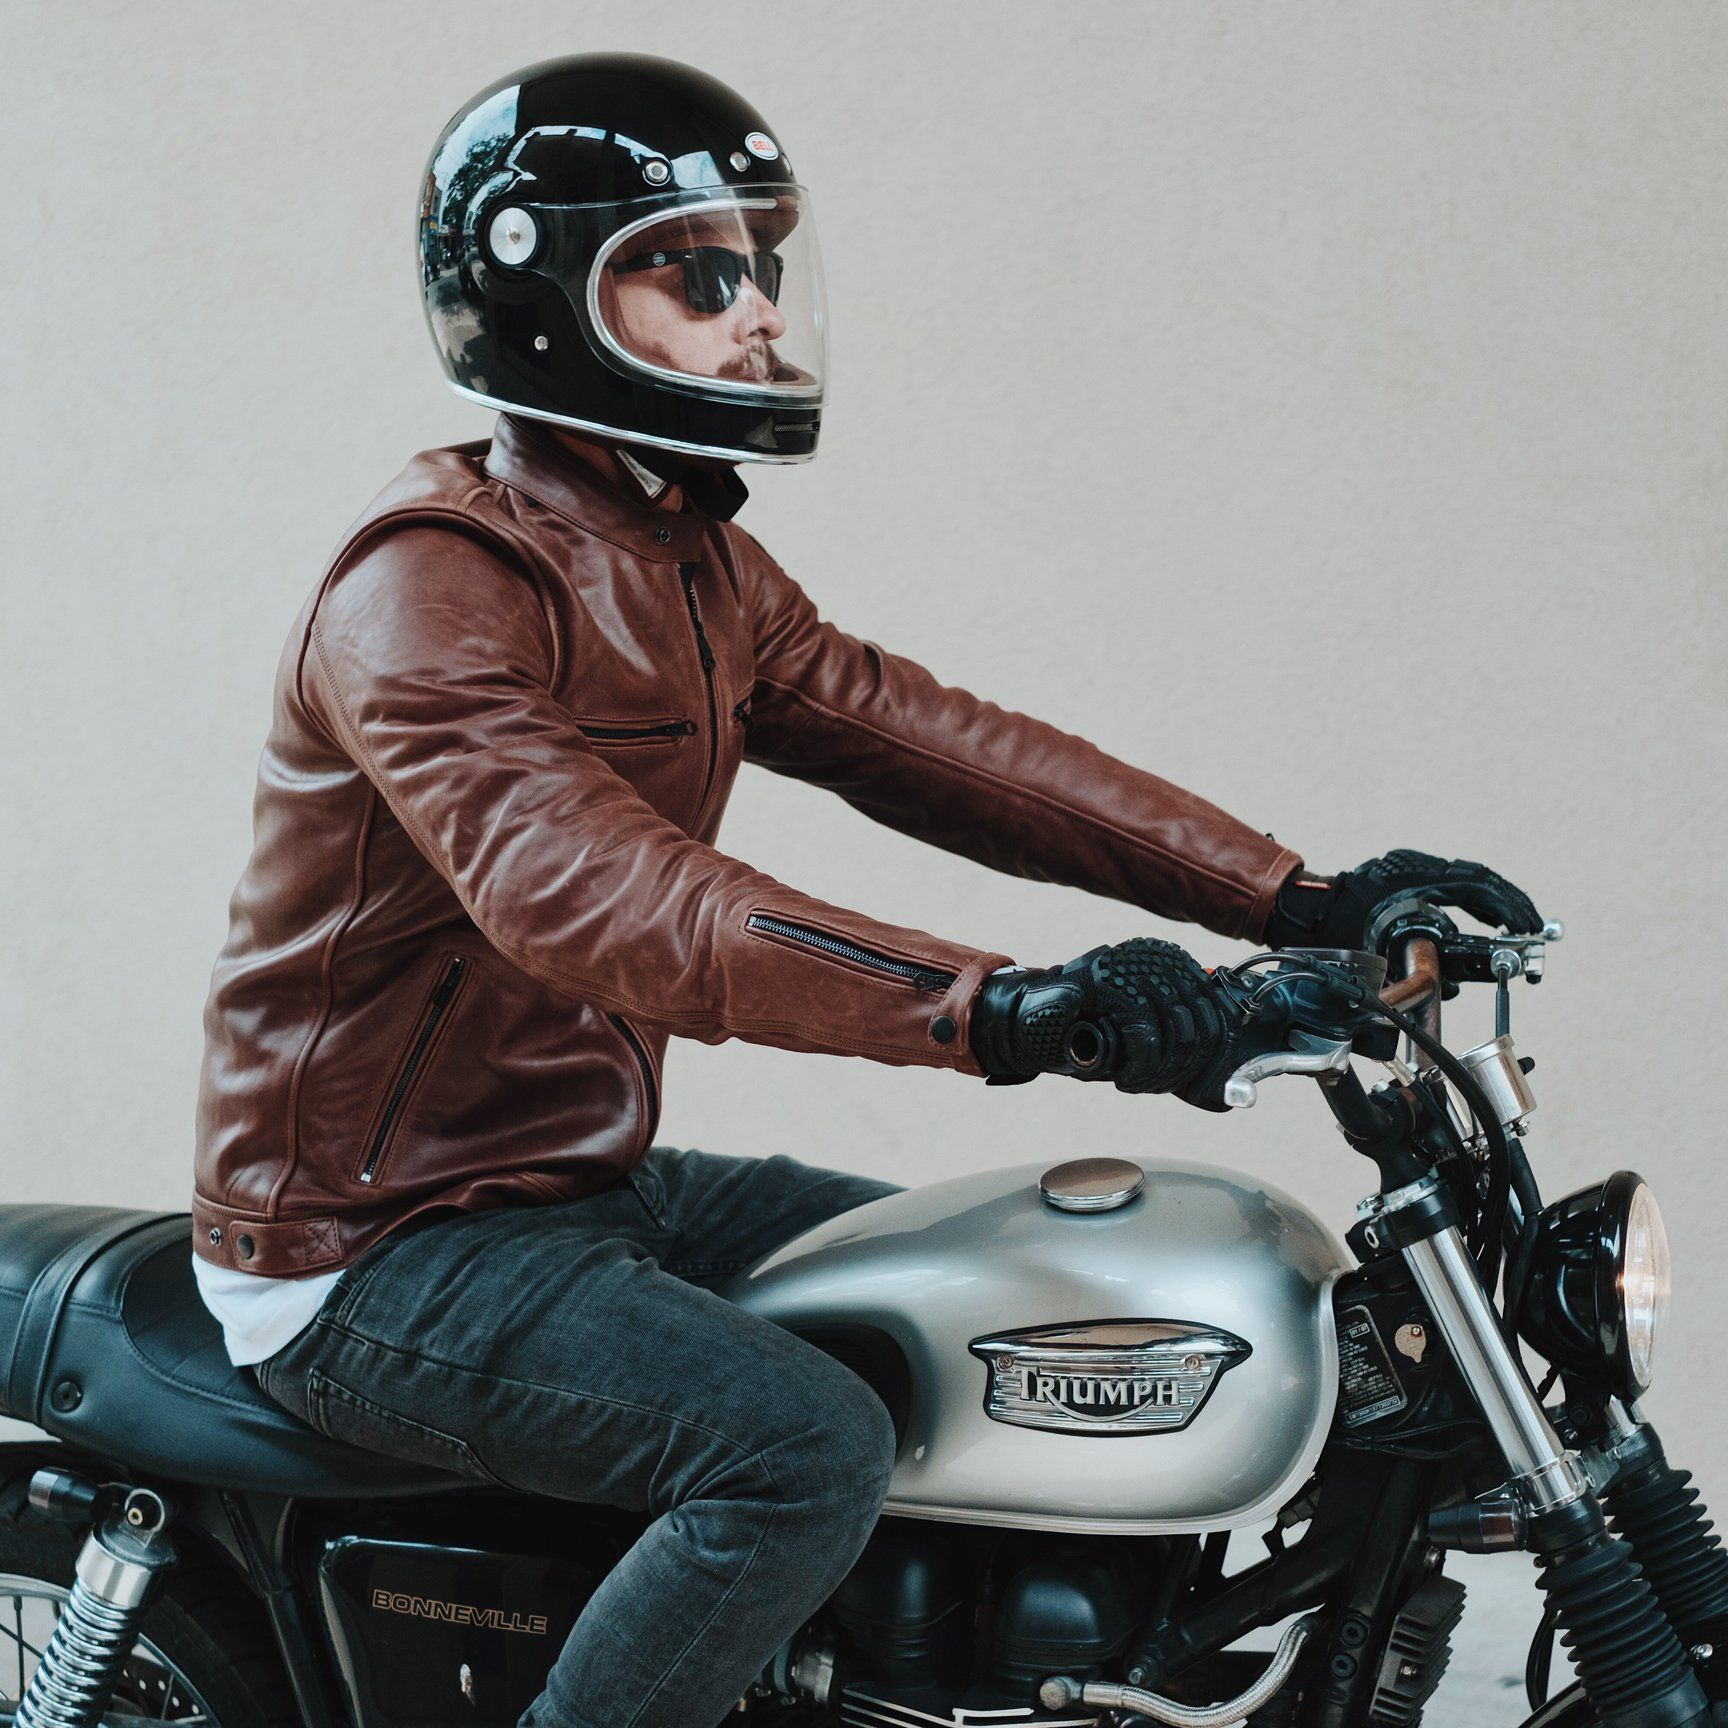 c9f18eece Roland Sands Ronin Leather Jacket - Black | Motorcycles and Riding ...